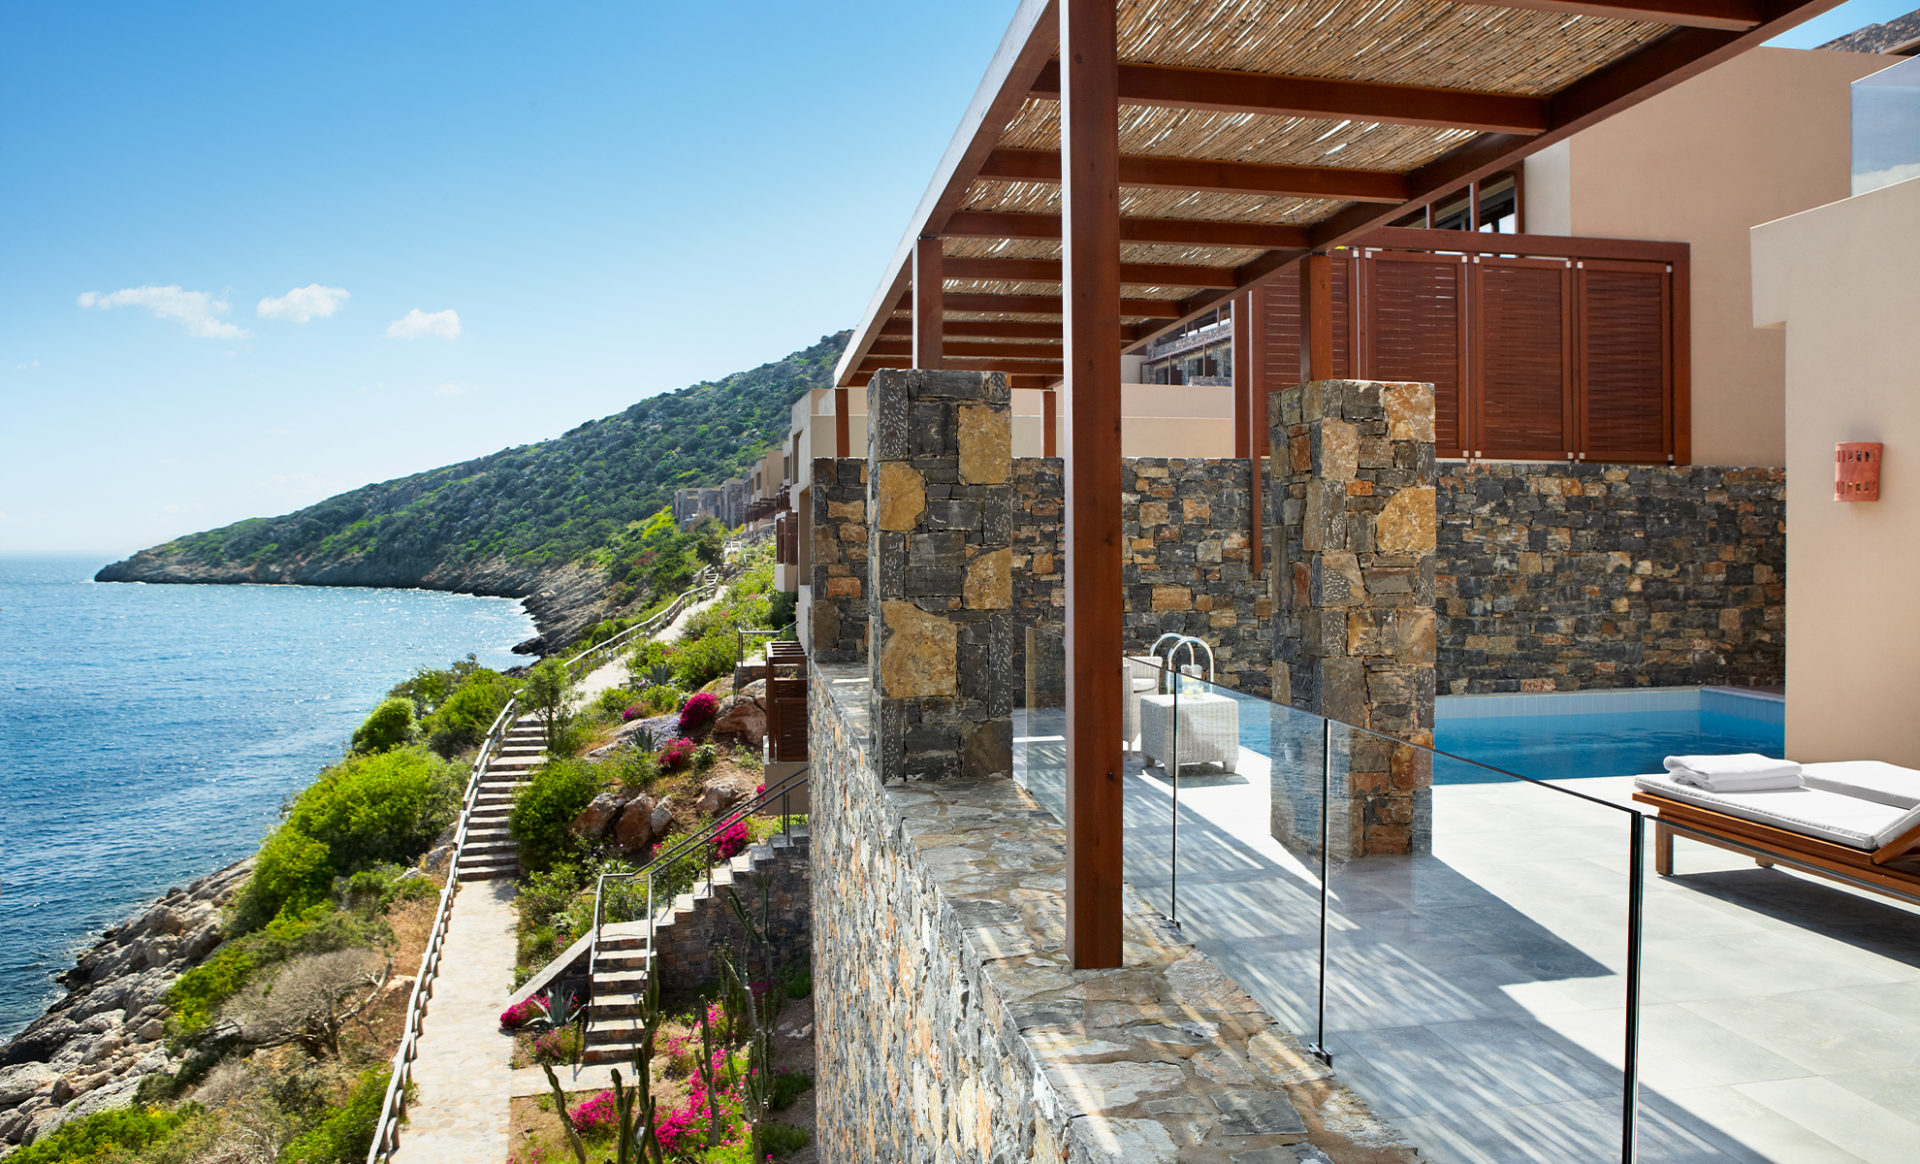 Daios-Cove-Greece-hotel-view-with-pool-